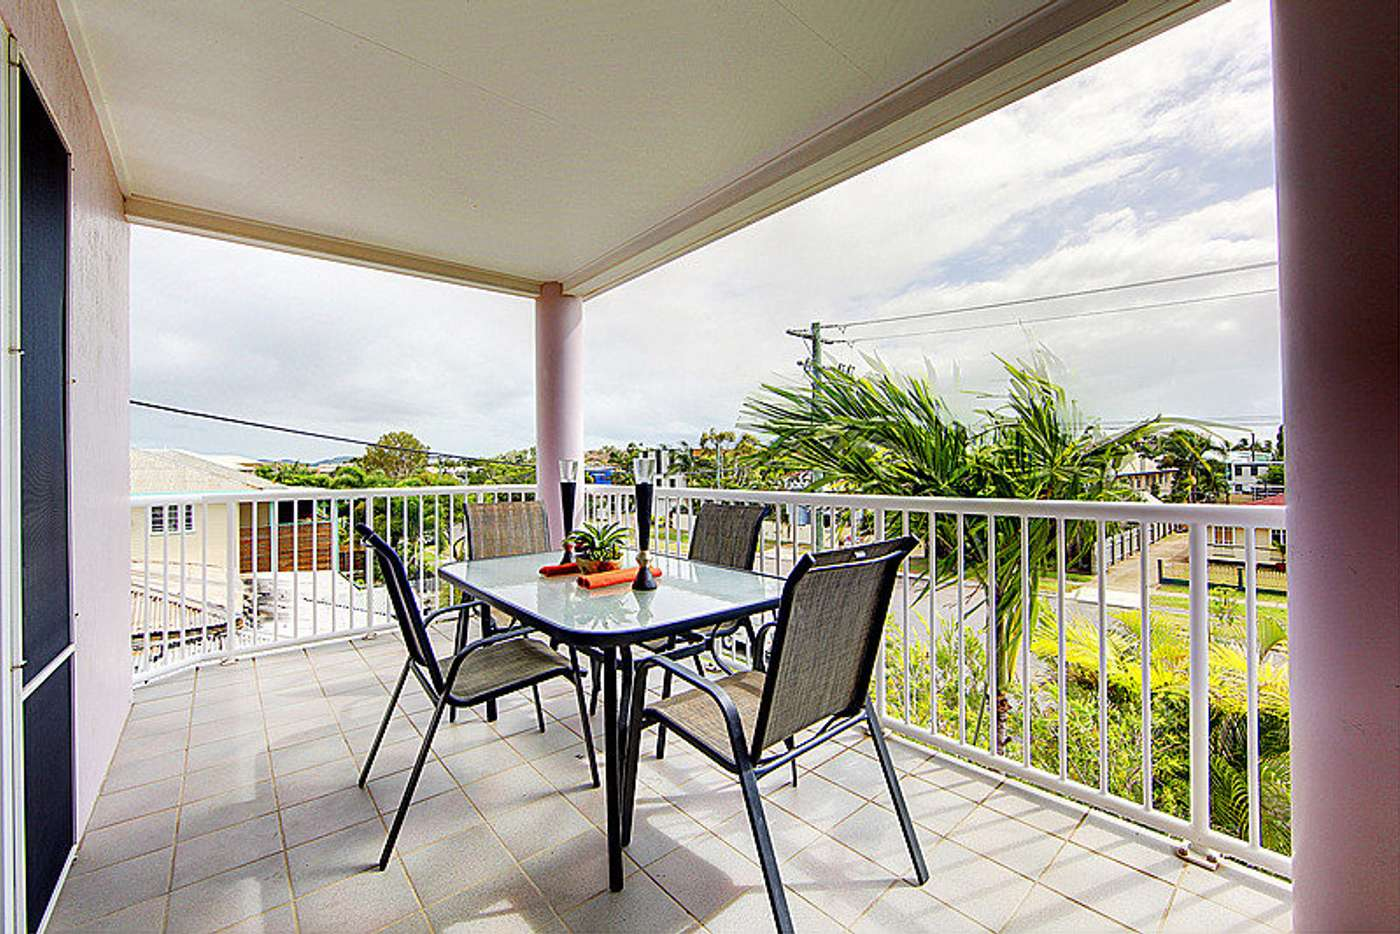 Main view of Homely apartment listing, 5/112 Eyre Street, North Ward QLD 4810